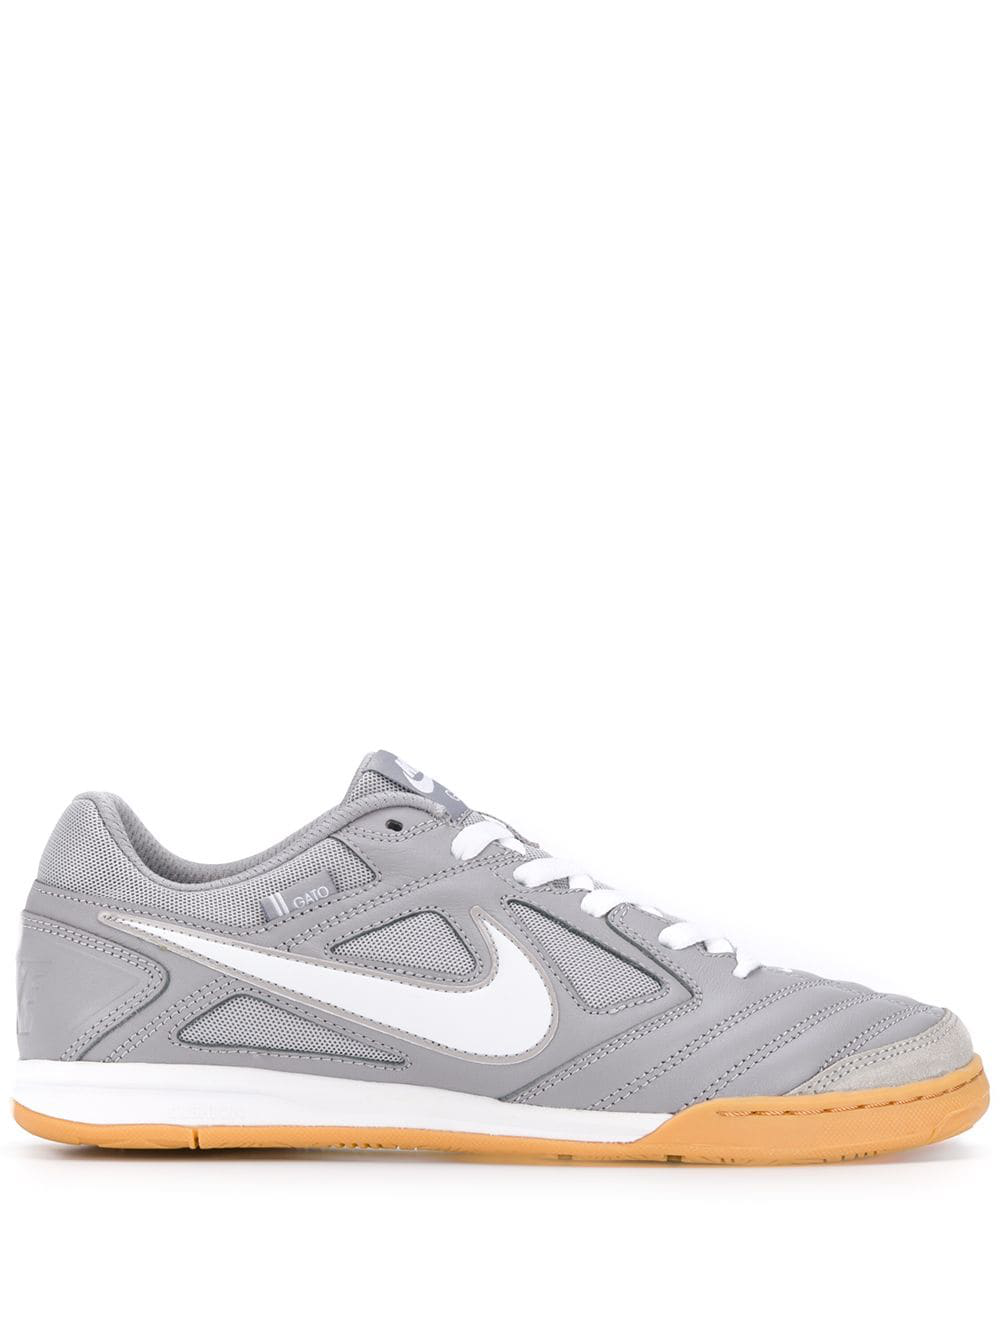 timeless design de1cd af1c8 Nike  Sb Gato Supreme  Sneakers - Grau ...